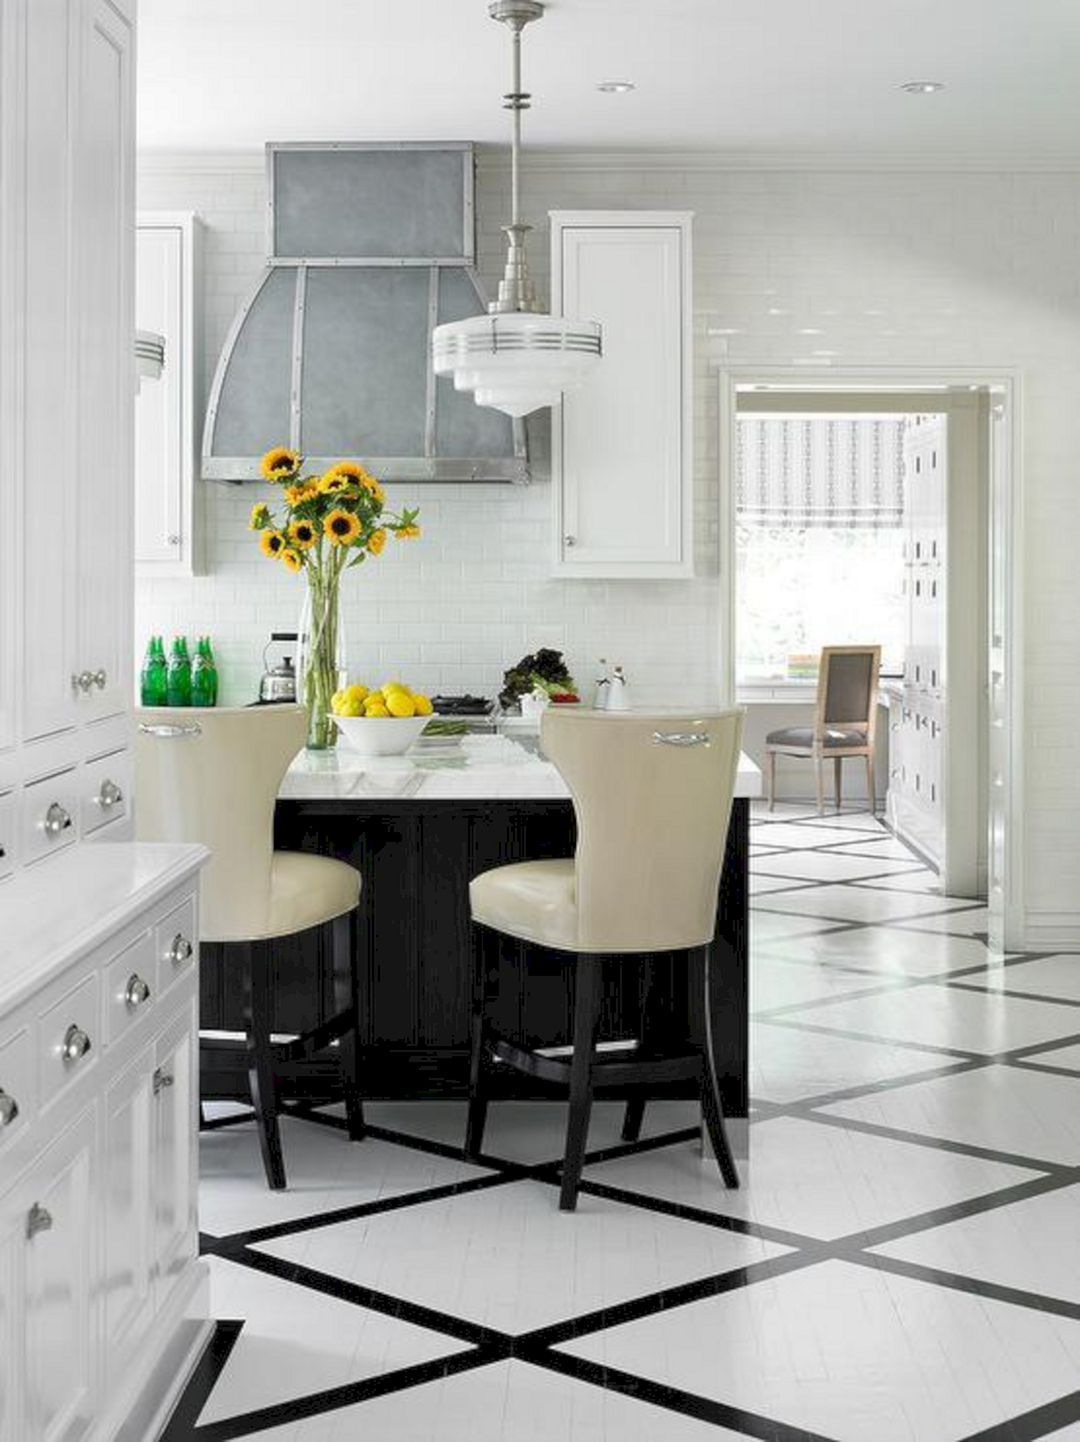 Astounding 30 Most Popular Kitchen Design With Black White Flooring Ideas Https Usdecorating Com White Kitchen Floor Kitchen Flooring Popular Kitchen Designs